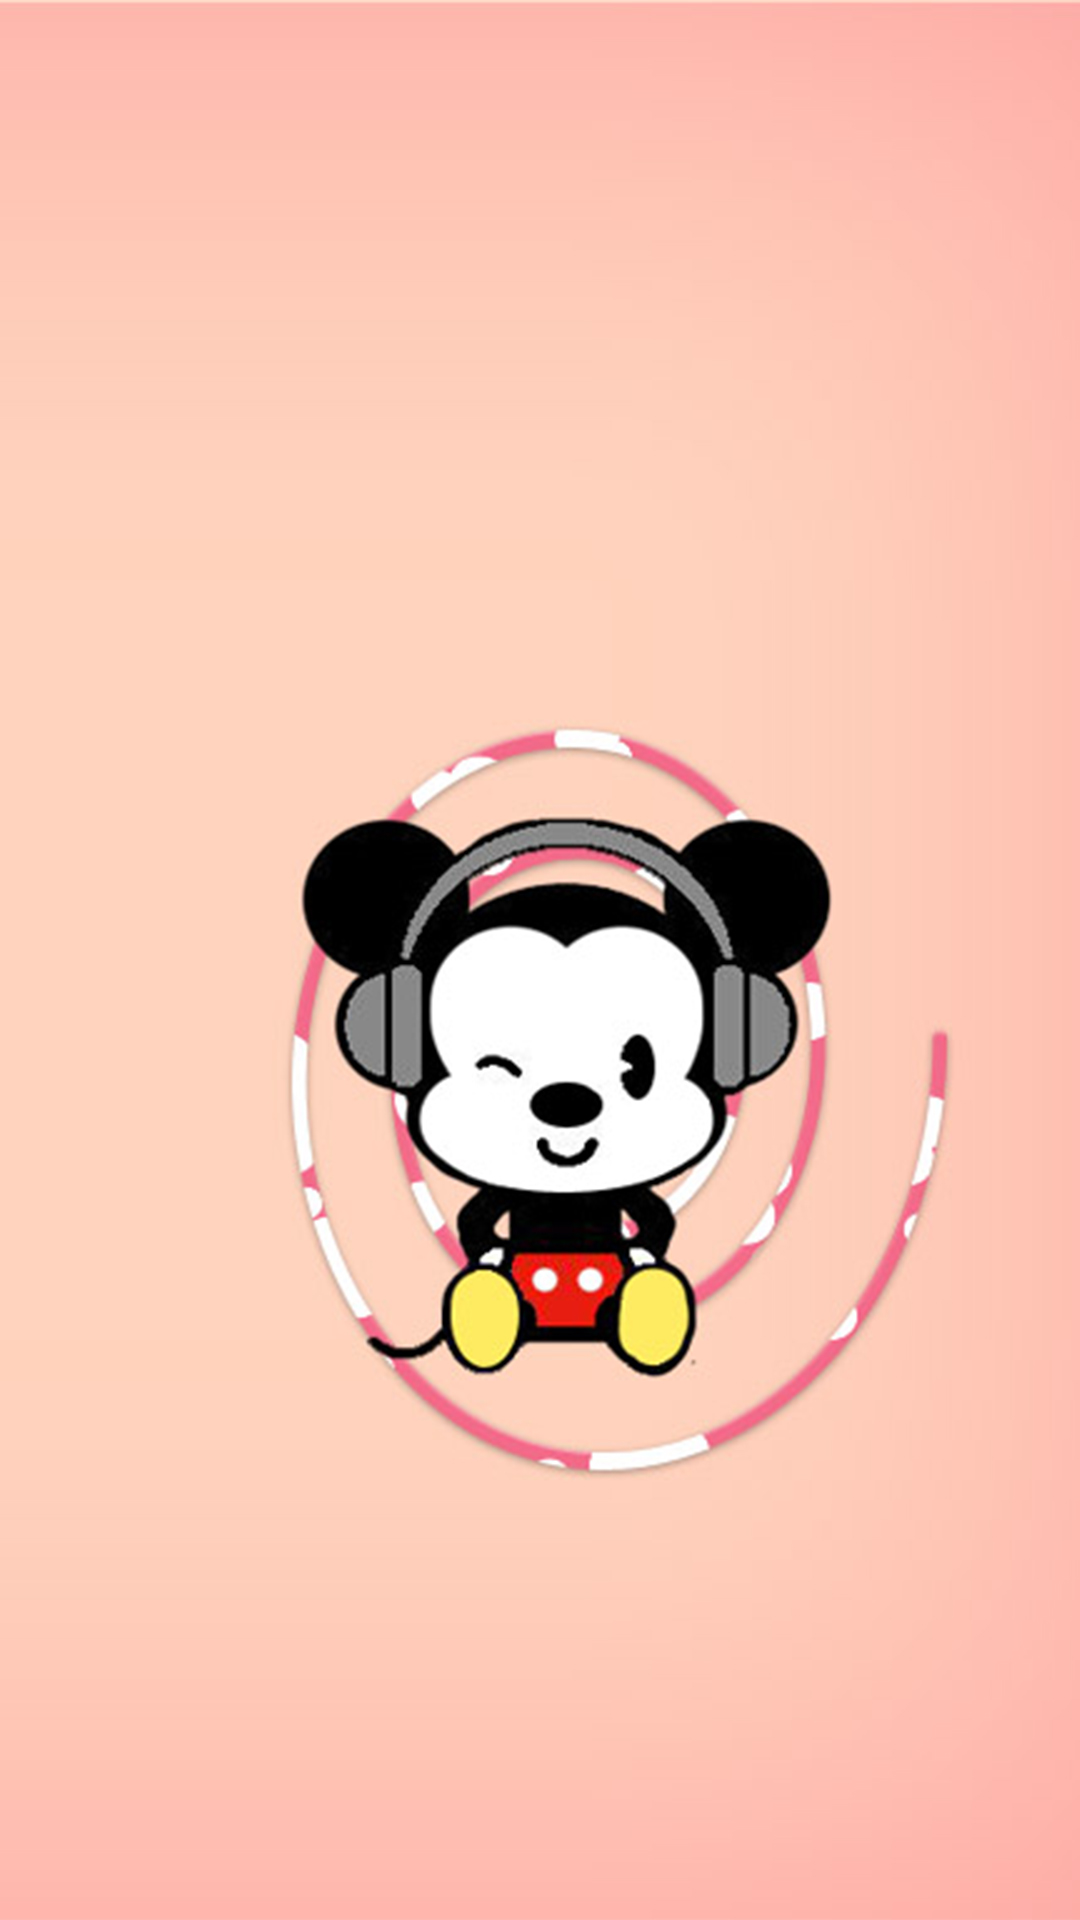 Free Download Mickey Mouse Wallpaper Iphone 5 The Art Mad